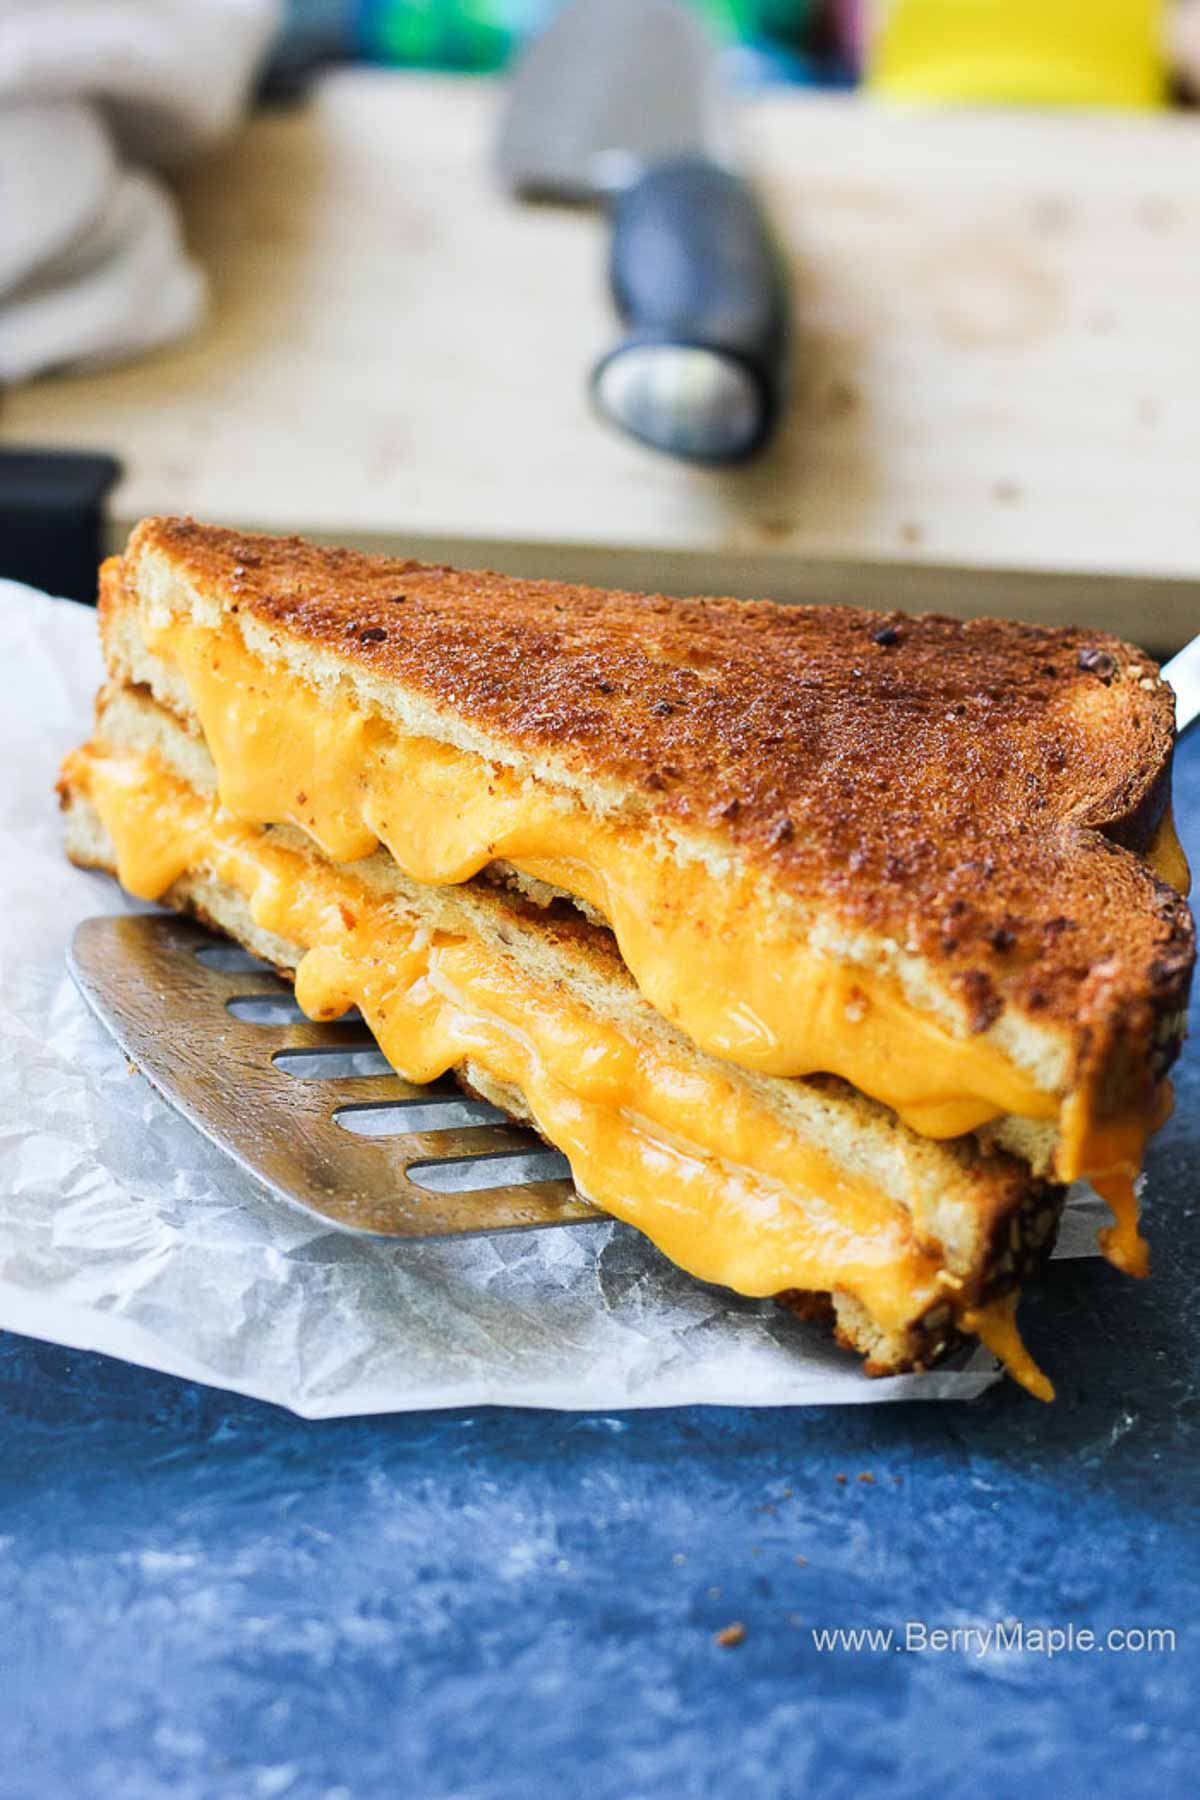 grilled cheese sandwich with melted cheese in the middle